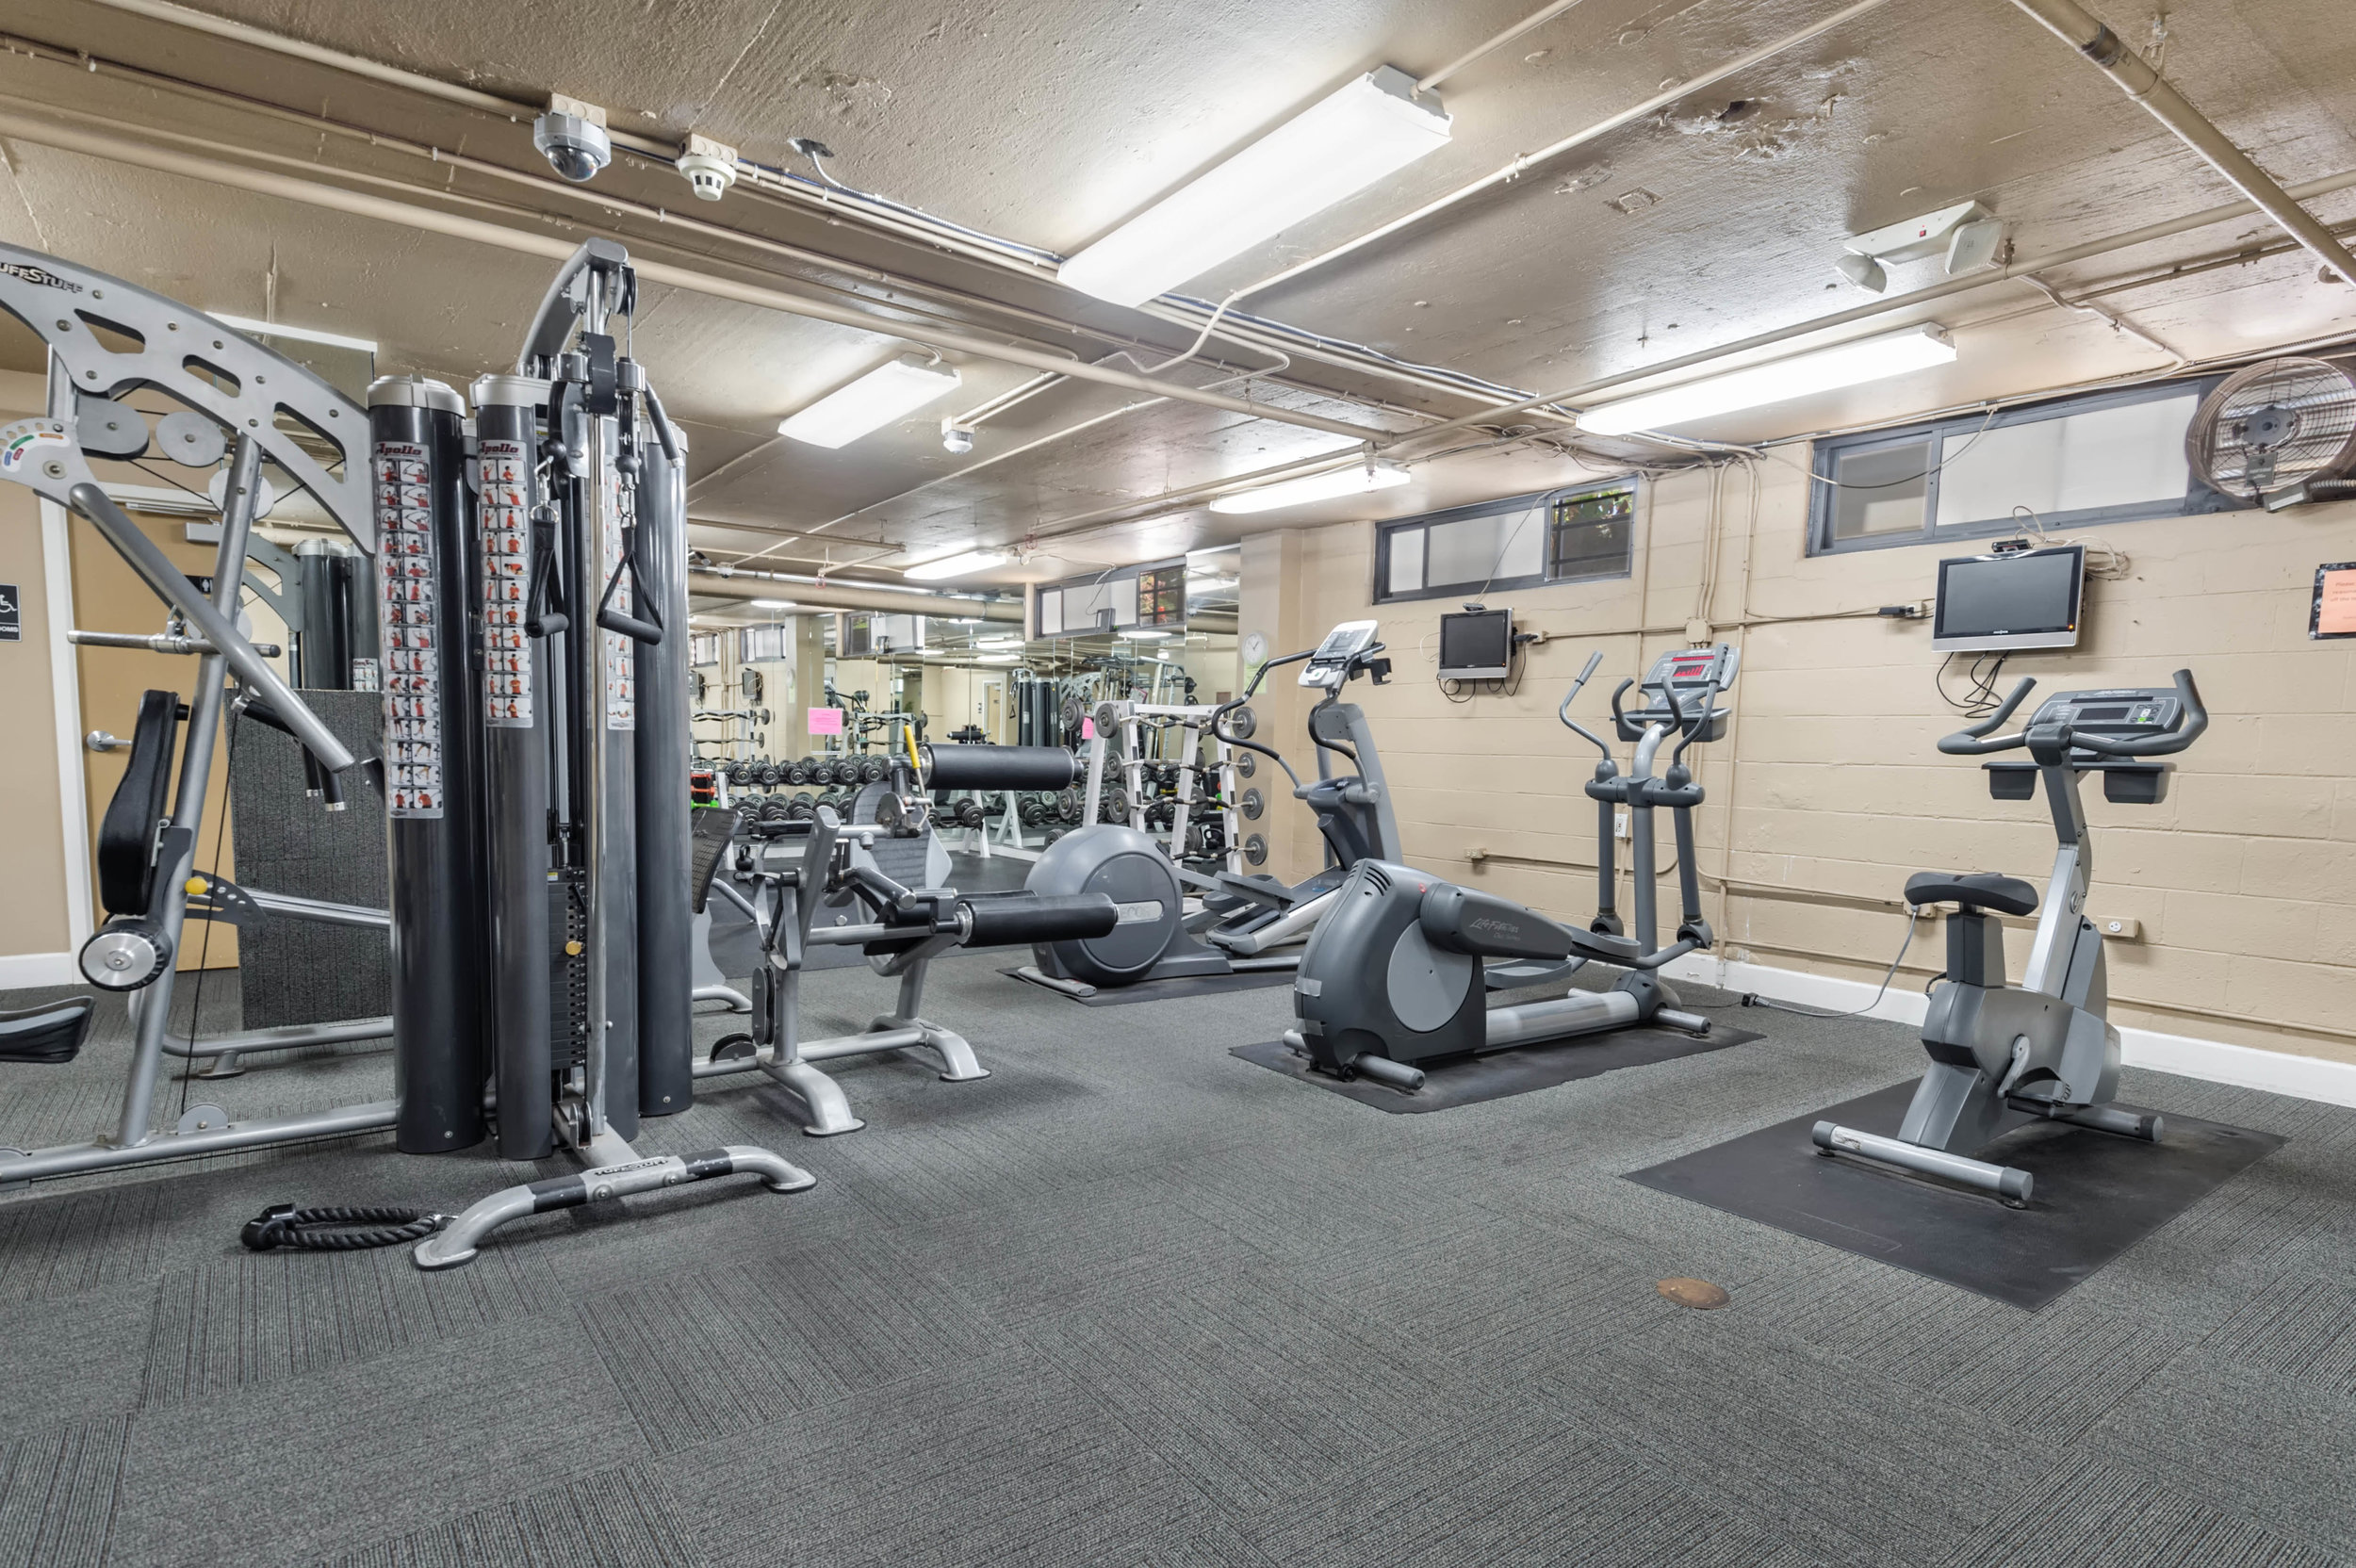 010 Gym 10982 Roebling Avenue #342 For Sale Lease The Malibu Life Team Luxury Real Estate.jpg